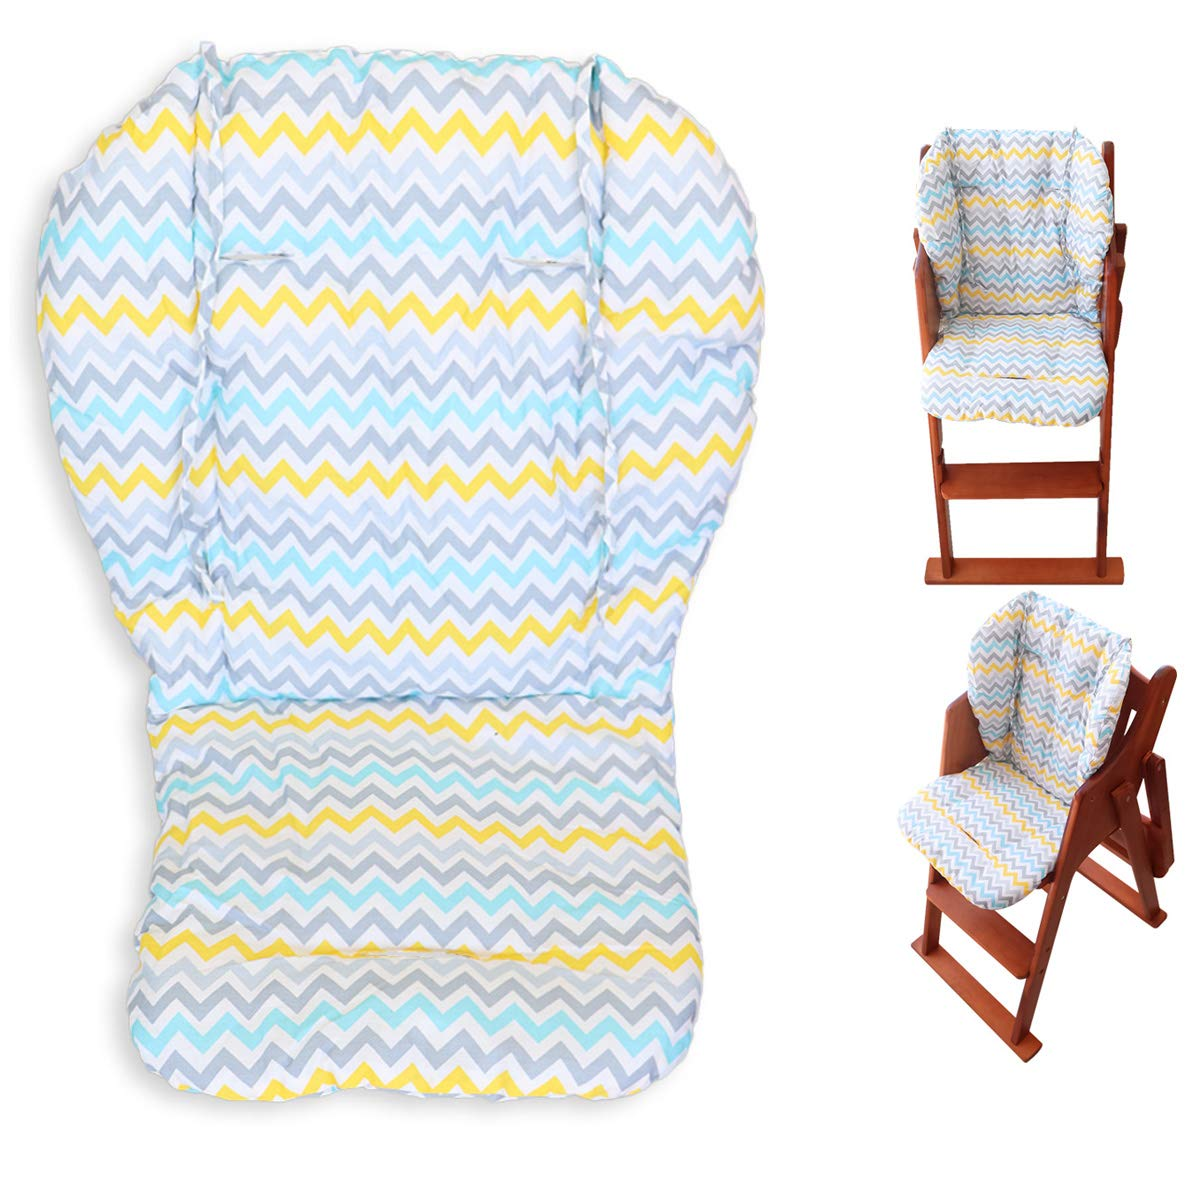 Twoworld High Chair Cushion, Large Thickening Baby High Chair Seat Cushion Liner Mat Pad Cover Breathable (Wavy Stripes)